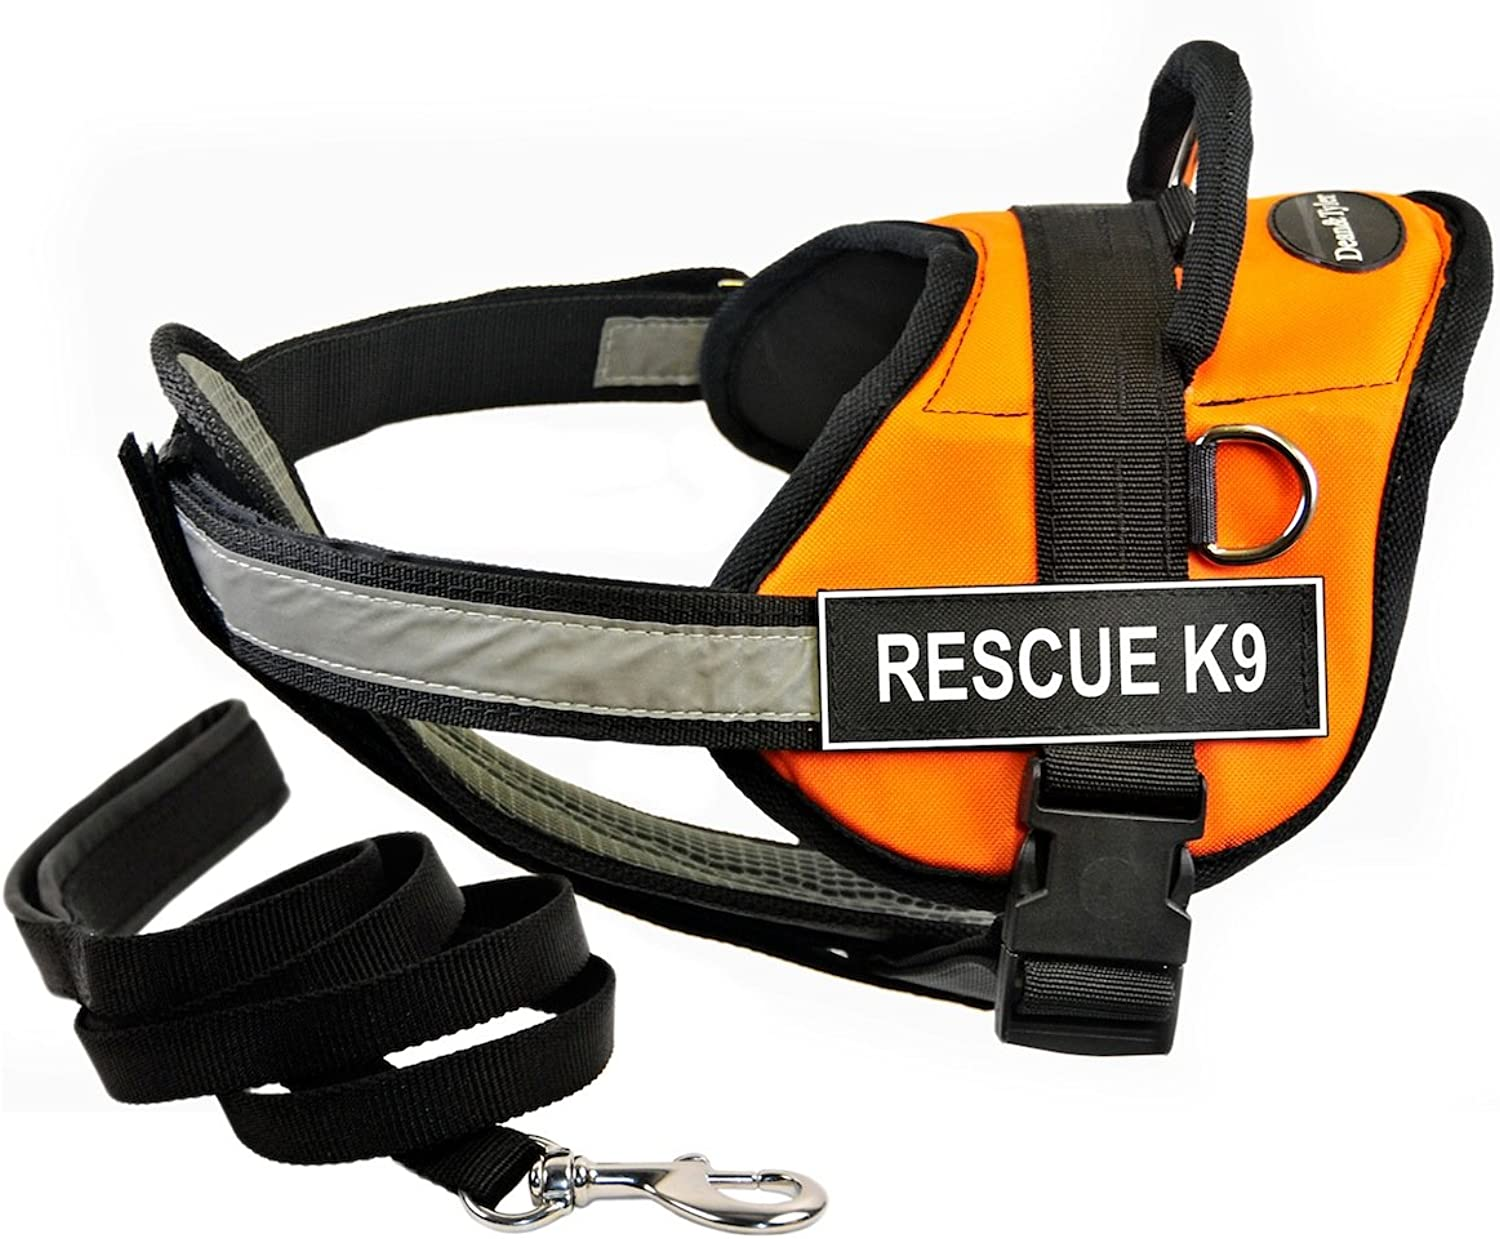 Dean & Tyler DT Works orange RESCUE K9 Harness with Chest Padding, XSmall, and Black 6 ft Padded Puppy Leash.